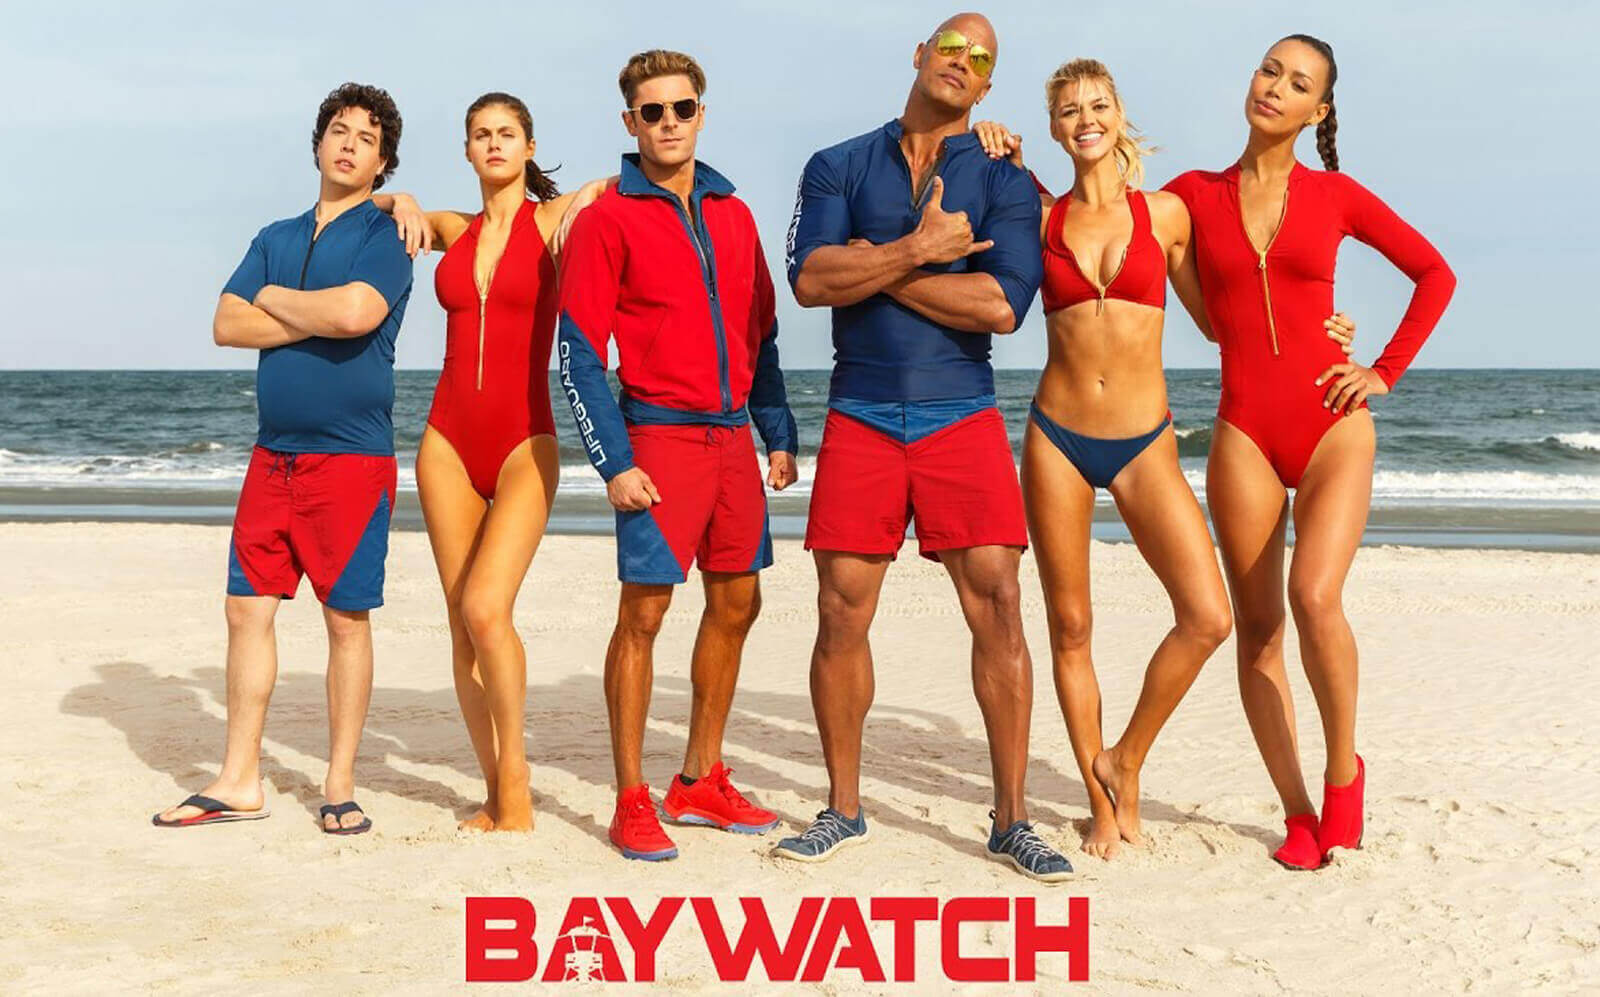 Baywatch 2017 Film Review